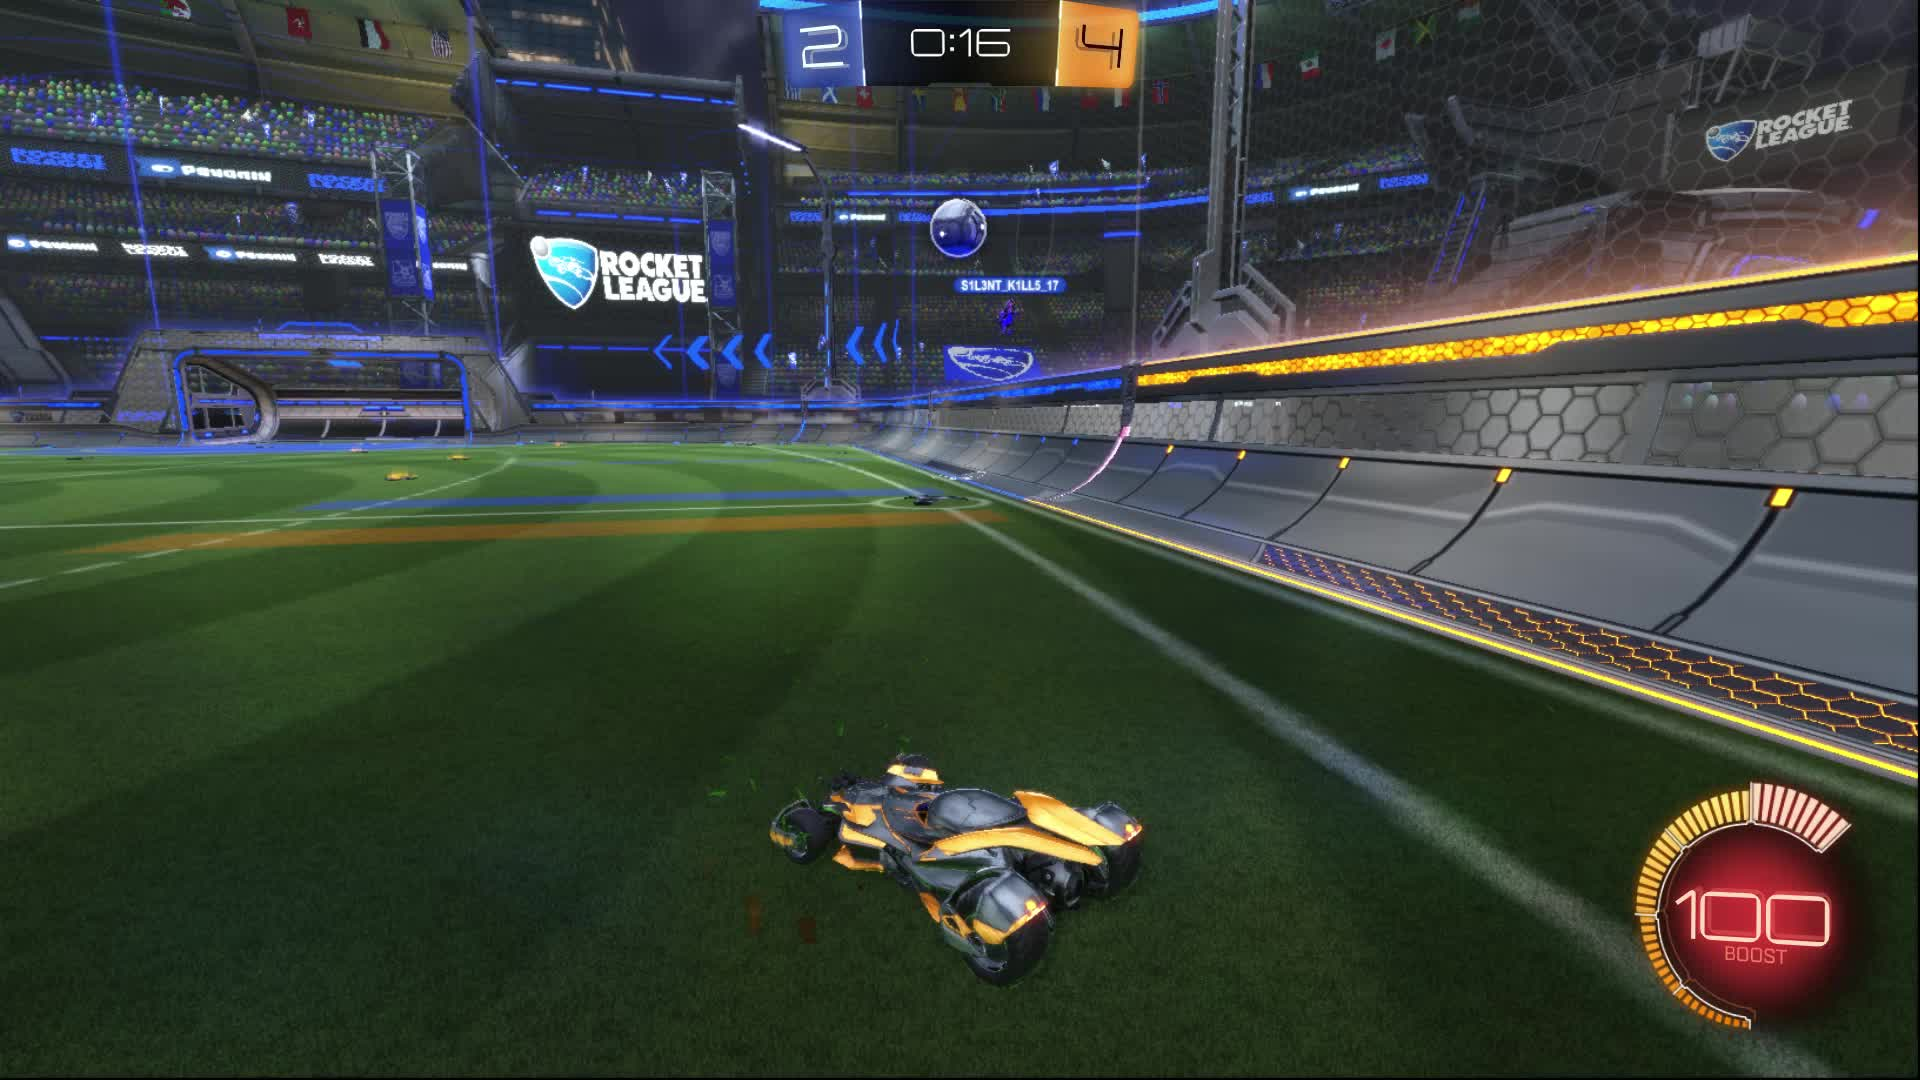 RocketLeague, videos (09) GIFs